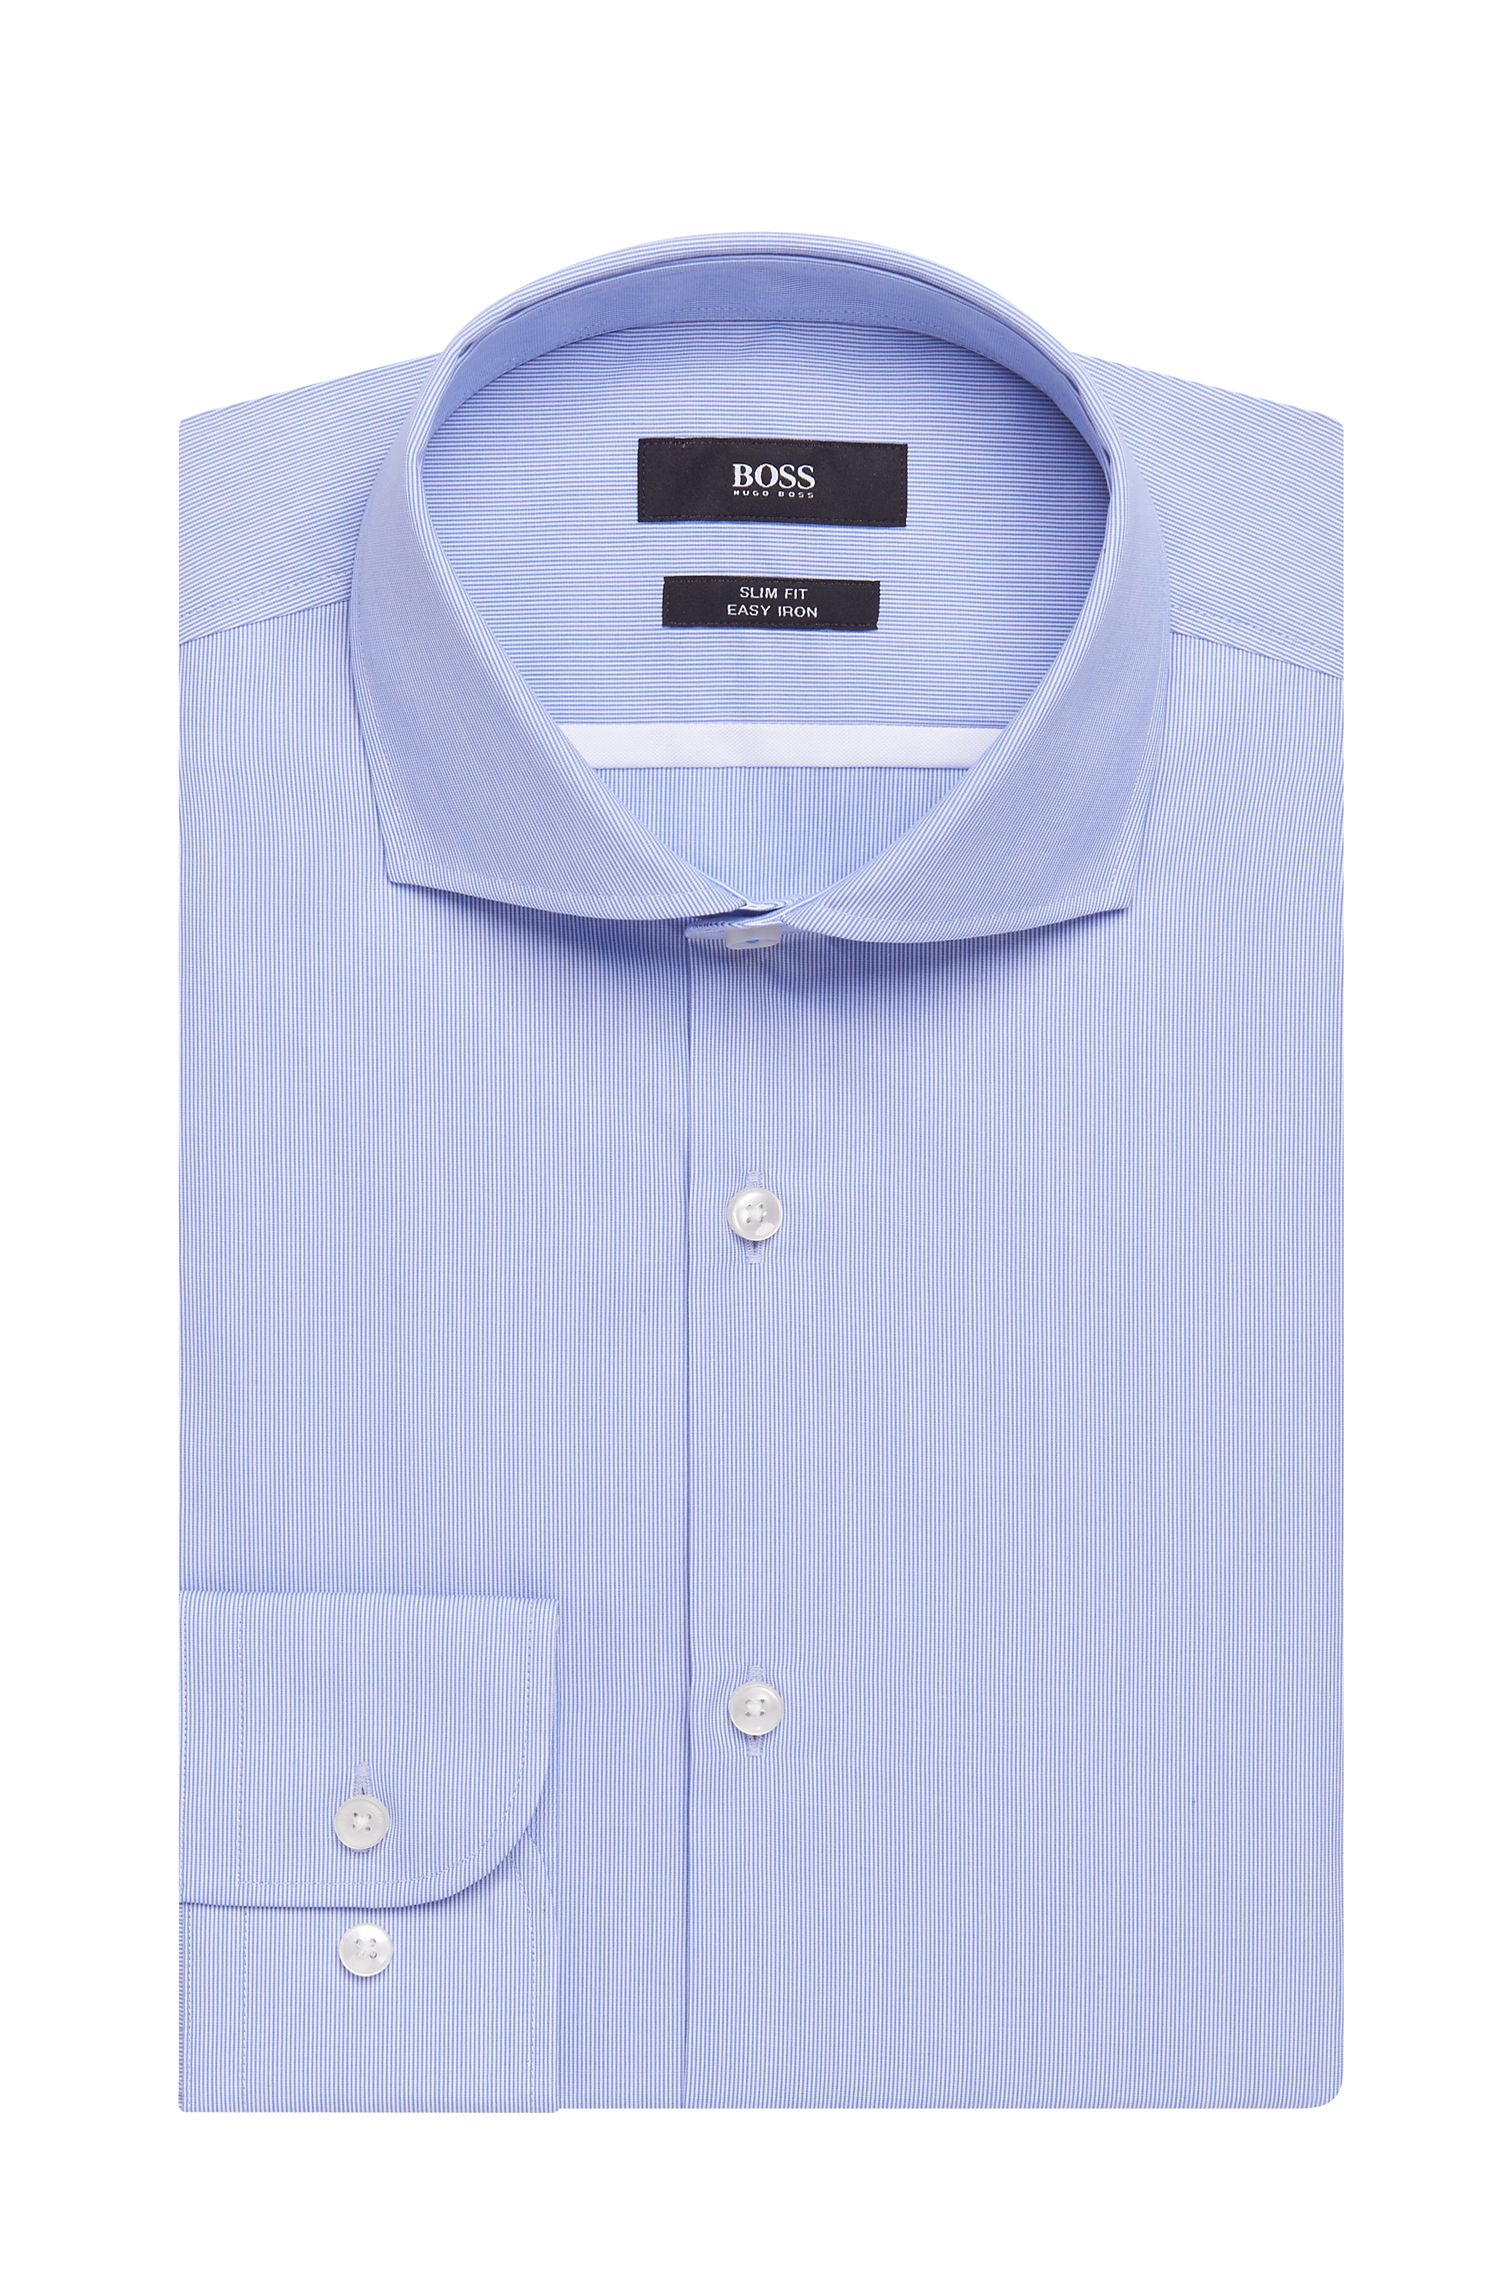 Striped Easy Iron Italian Poplin Dress Shirt, Slim Fit | Jerrin